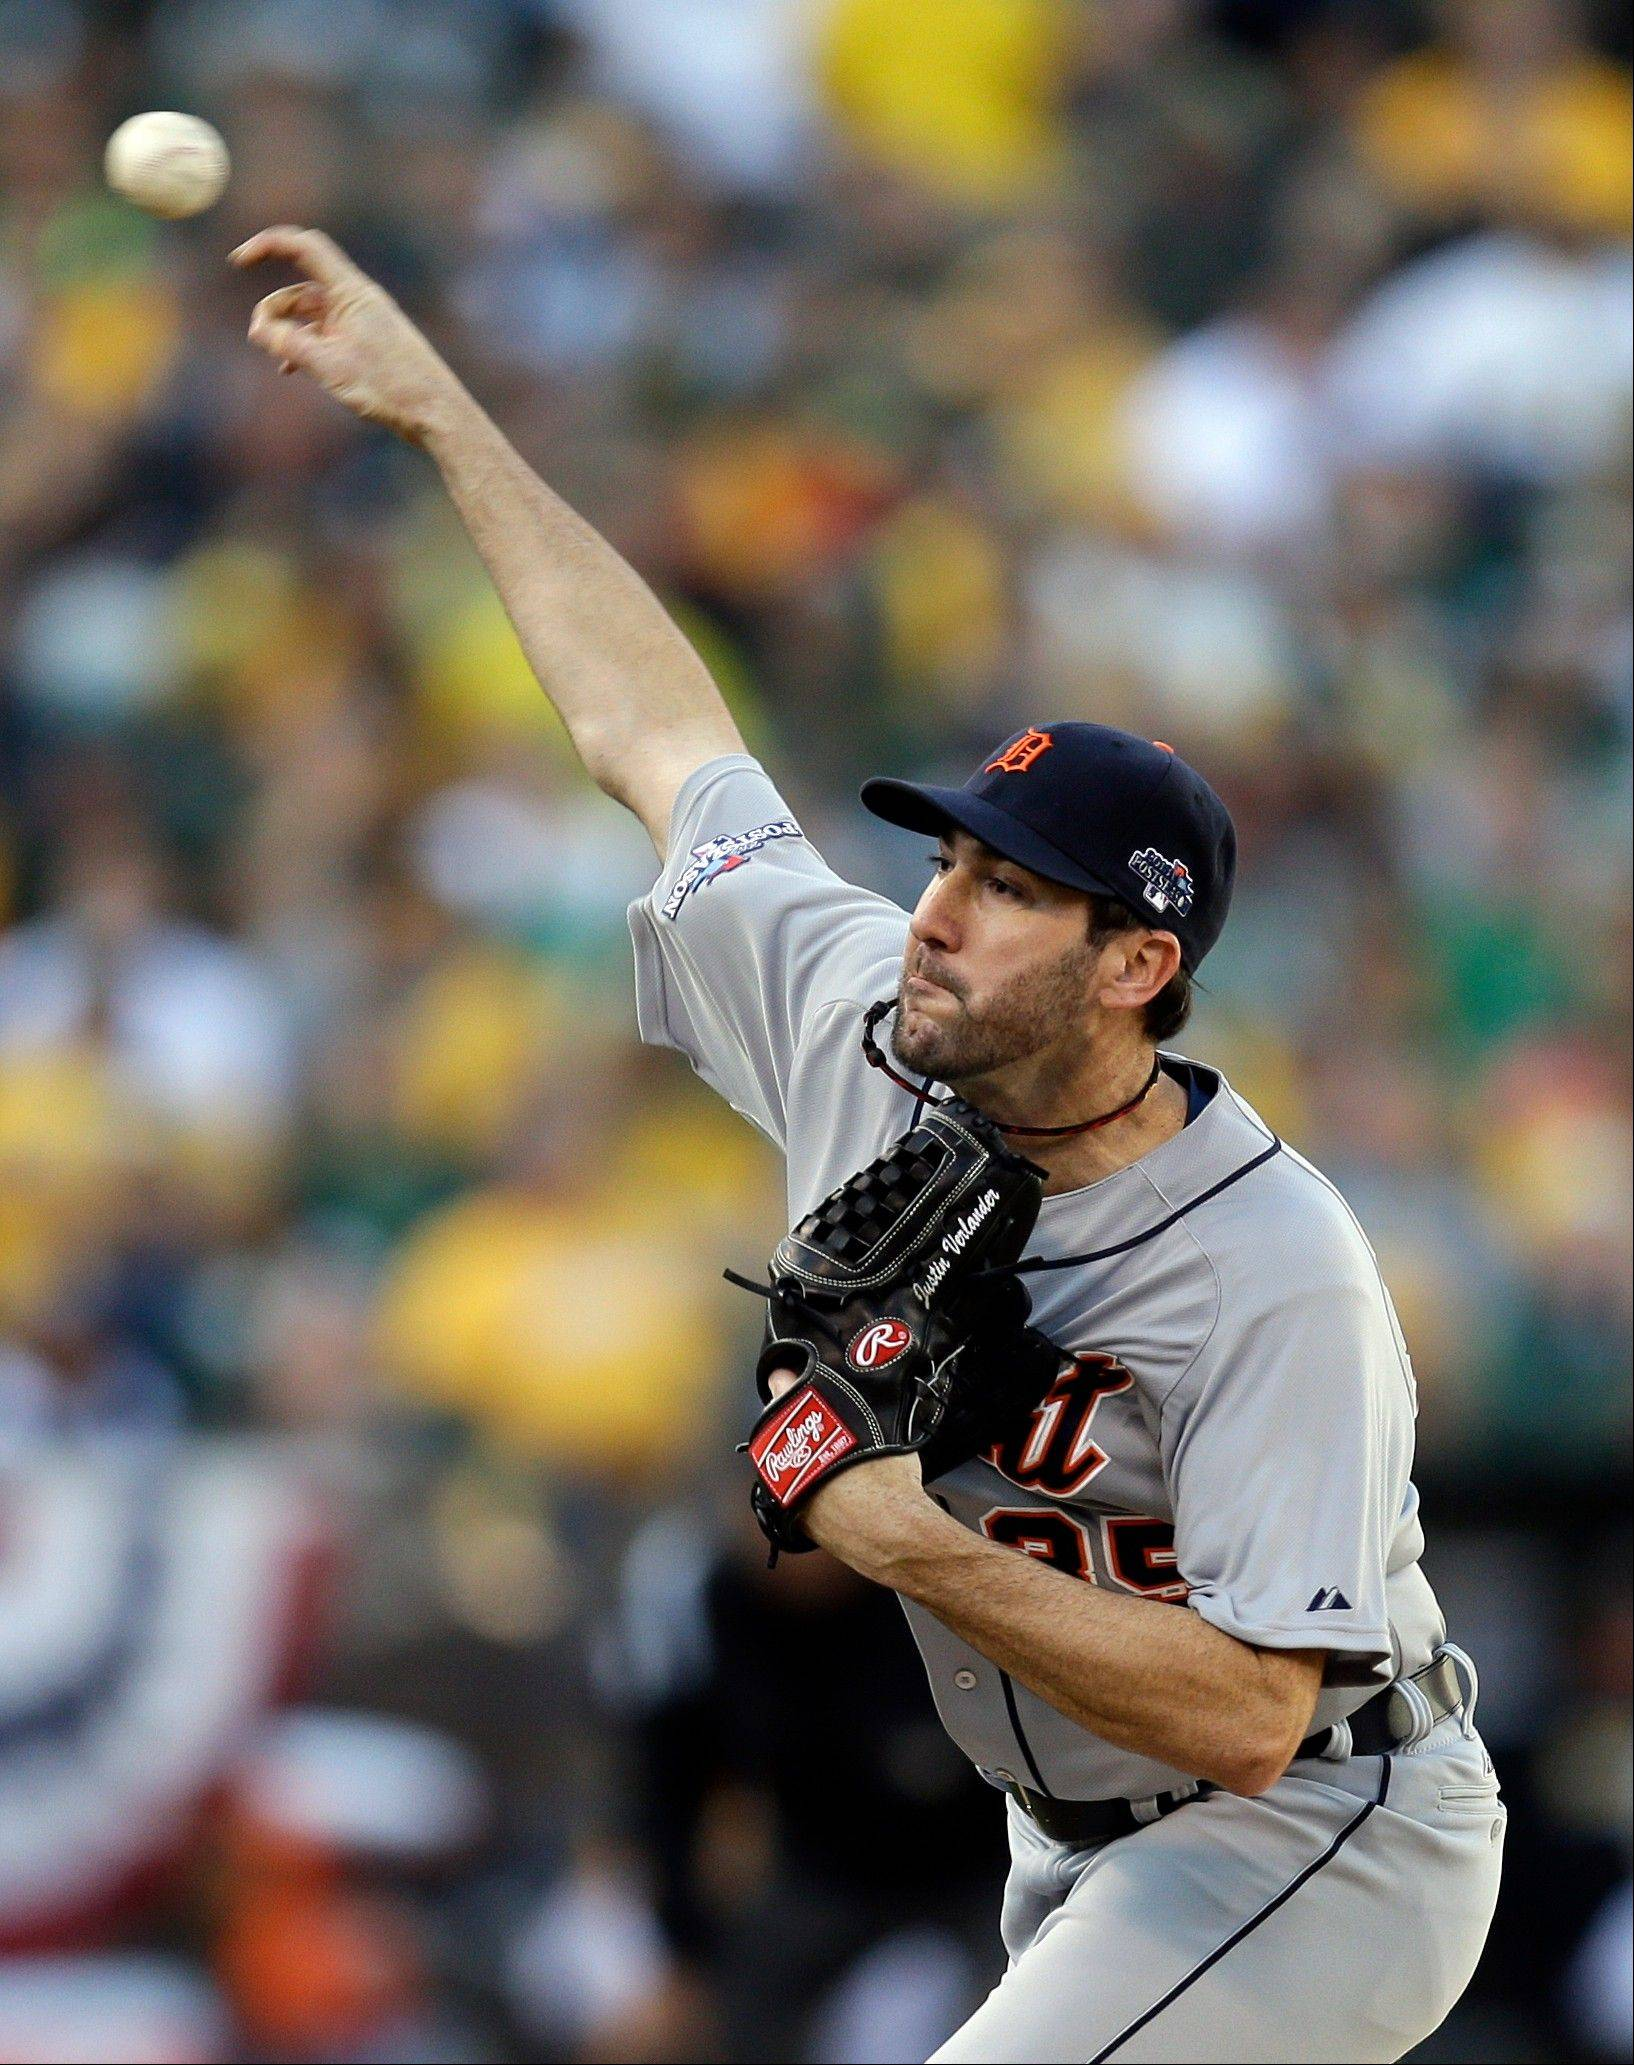 Tigers pitcher Justin Verlander delivers a pitch in the first inning of Game 5. He had a no-hitter heading into the seventh inning.